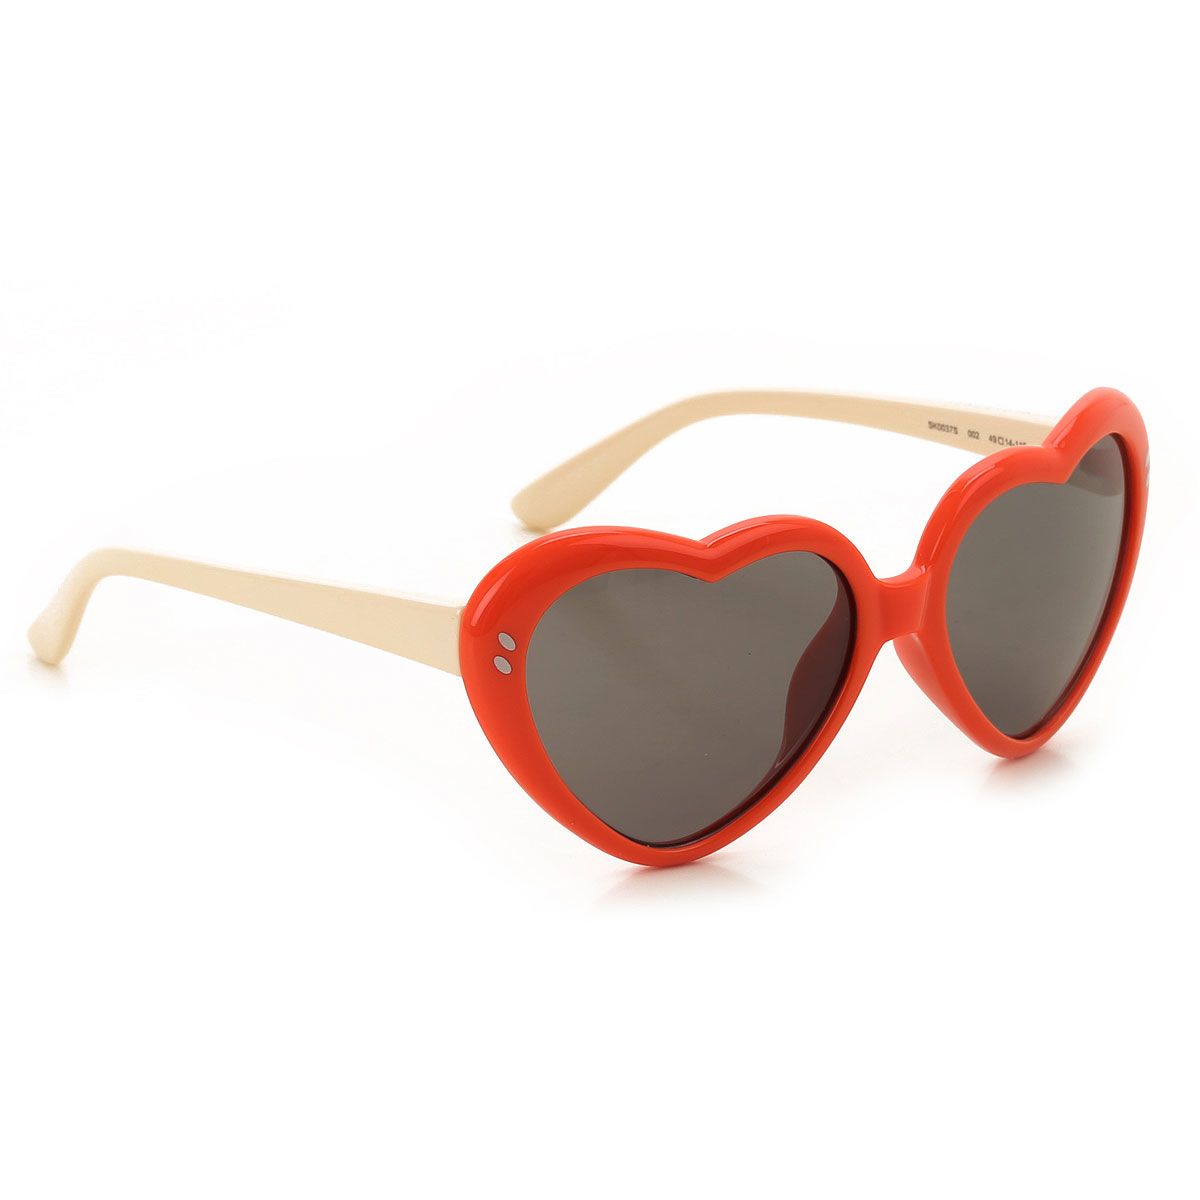 Stella McCartney Kids Sunglasses for Girls On Sale Orange DK - GOOFASH - Womens SUNGLASSES